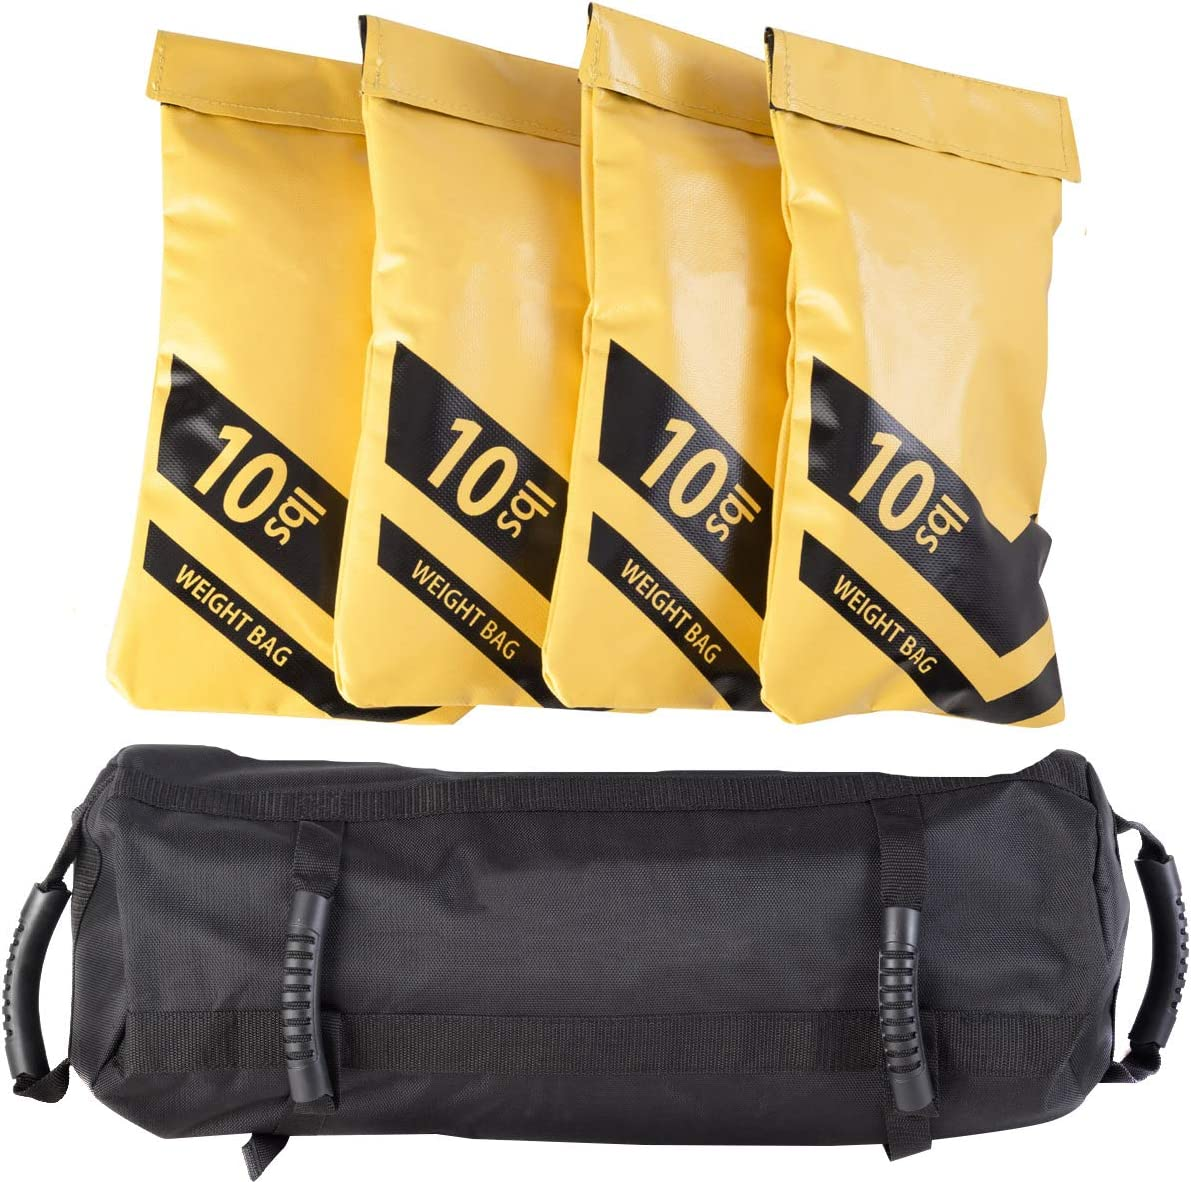 Details about  / 0-30kg Boxing Power Bag//Sand Bag Fit Bag Exercise Training MMA Weight Bags DE